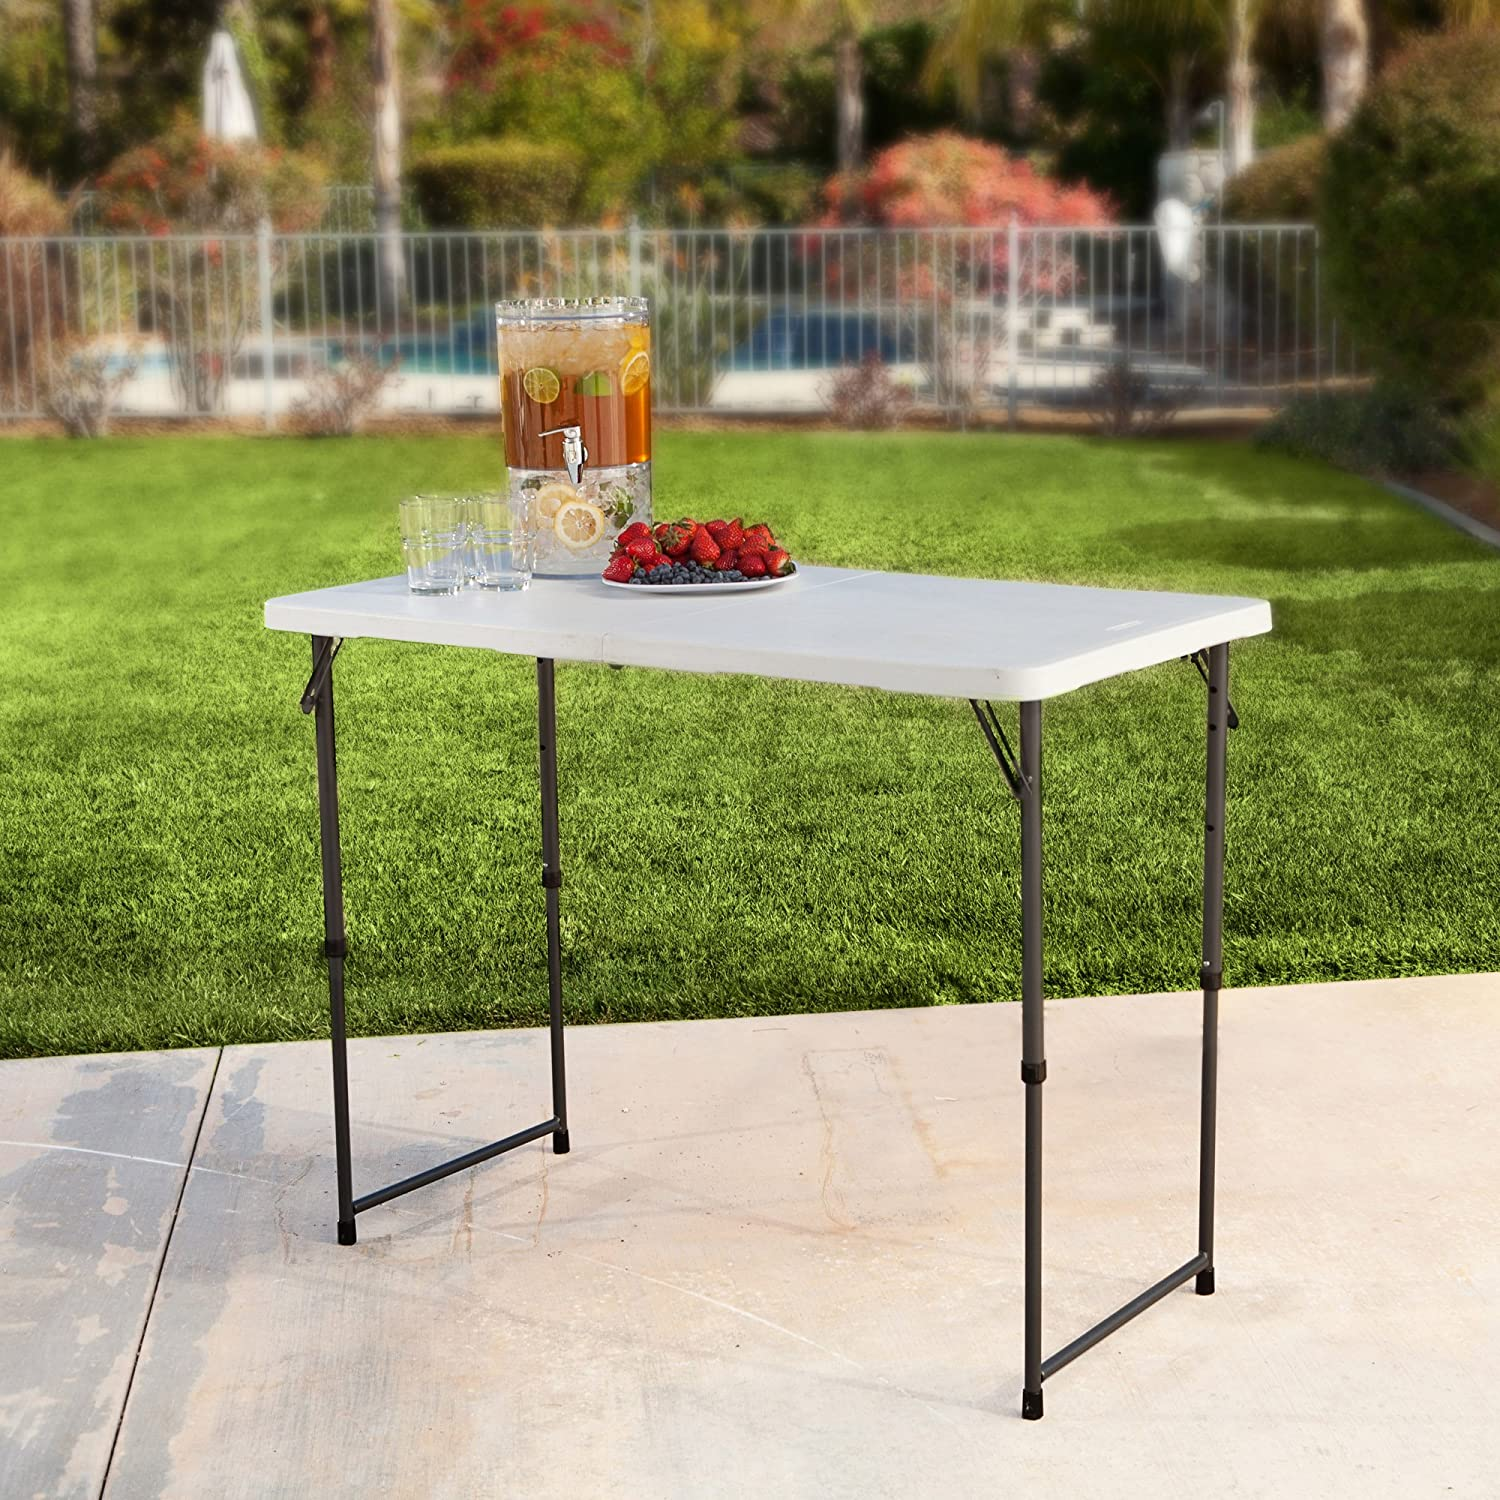 Lifetime Adjustable 4428 Height Folding Utility Table, 4 Foot: Amazon.ca:  Patio, Lawn U0026 Garden